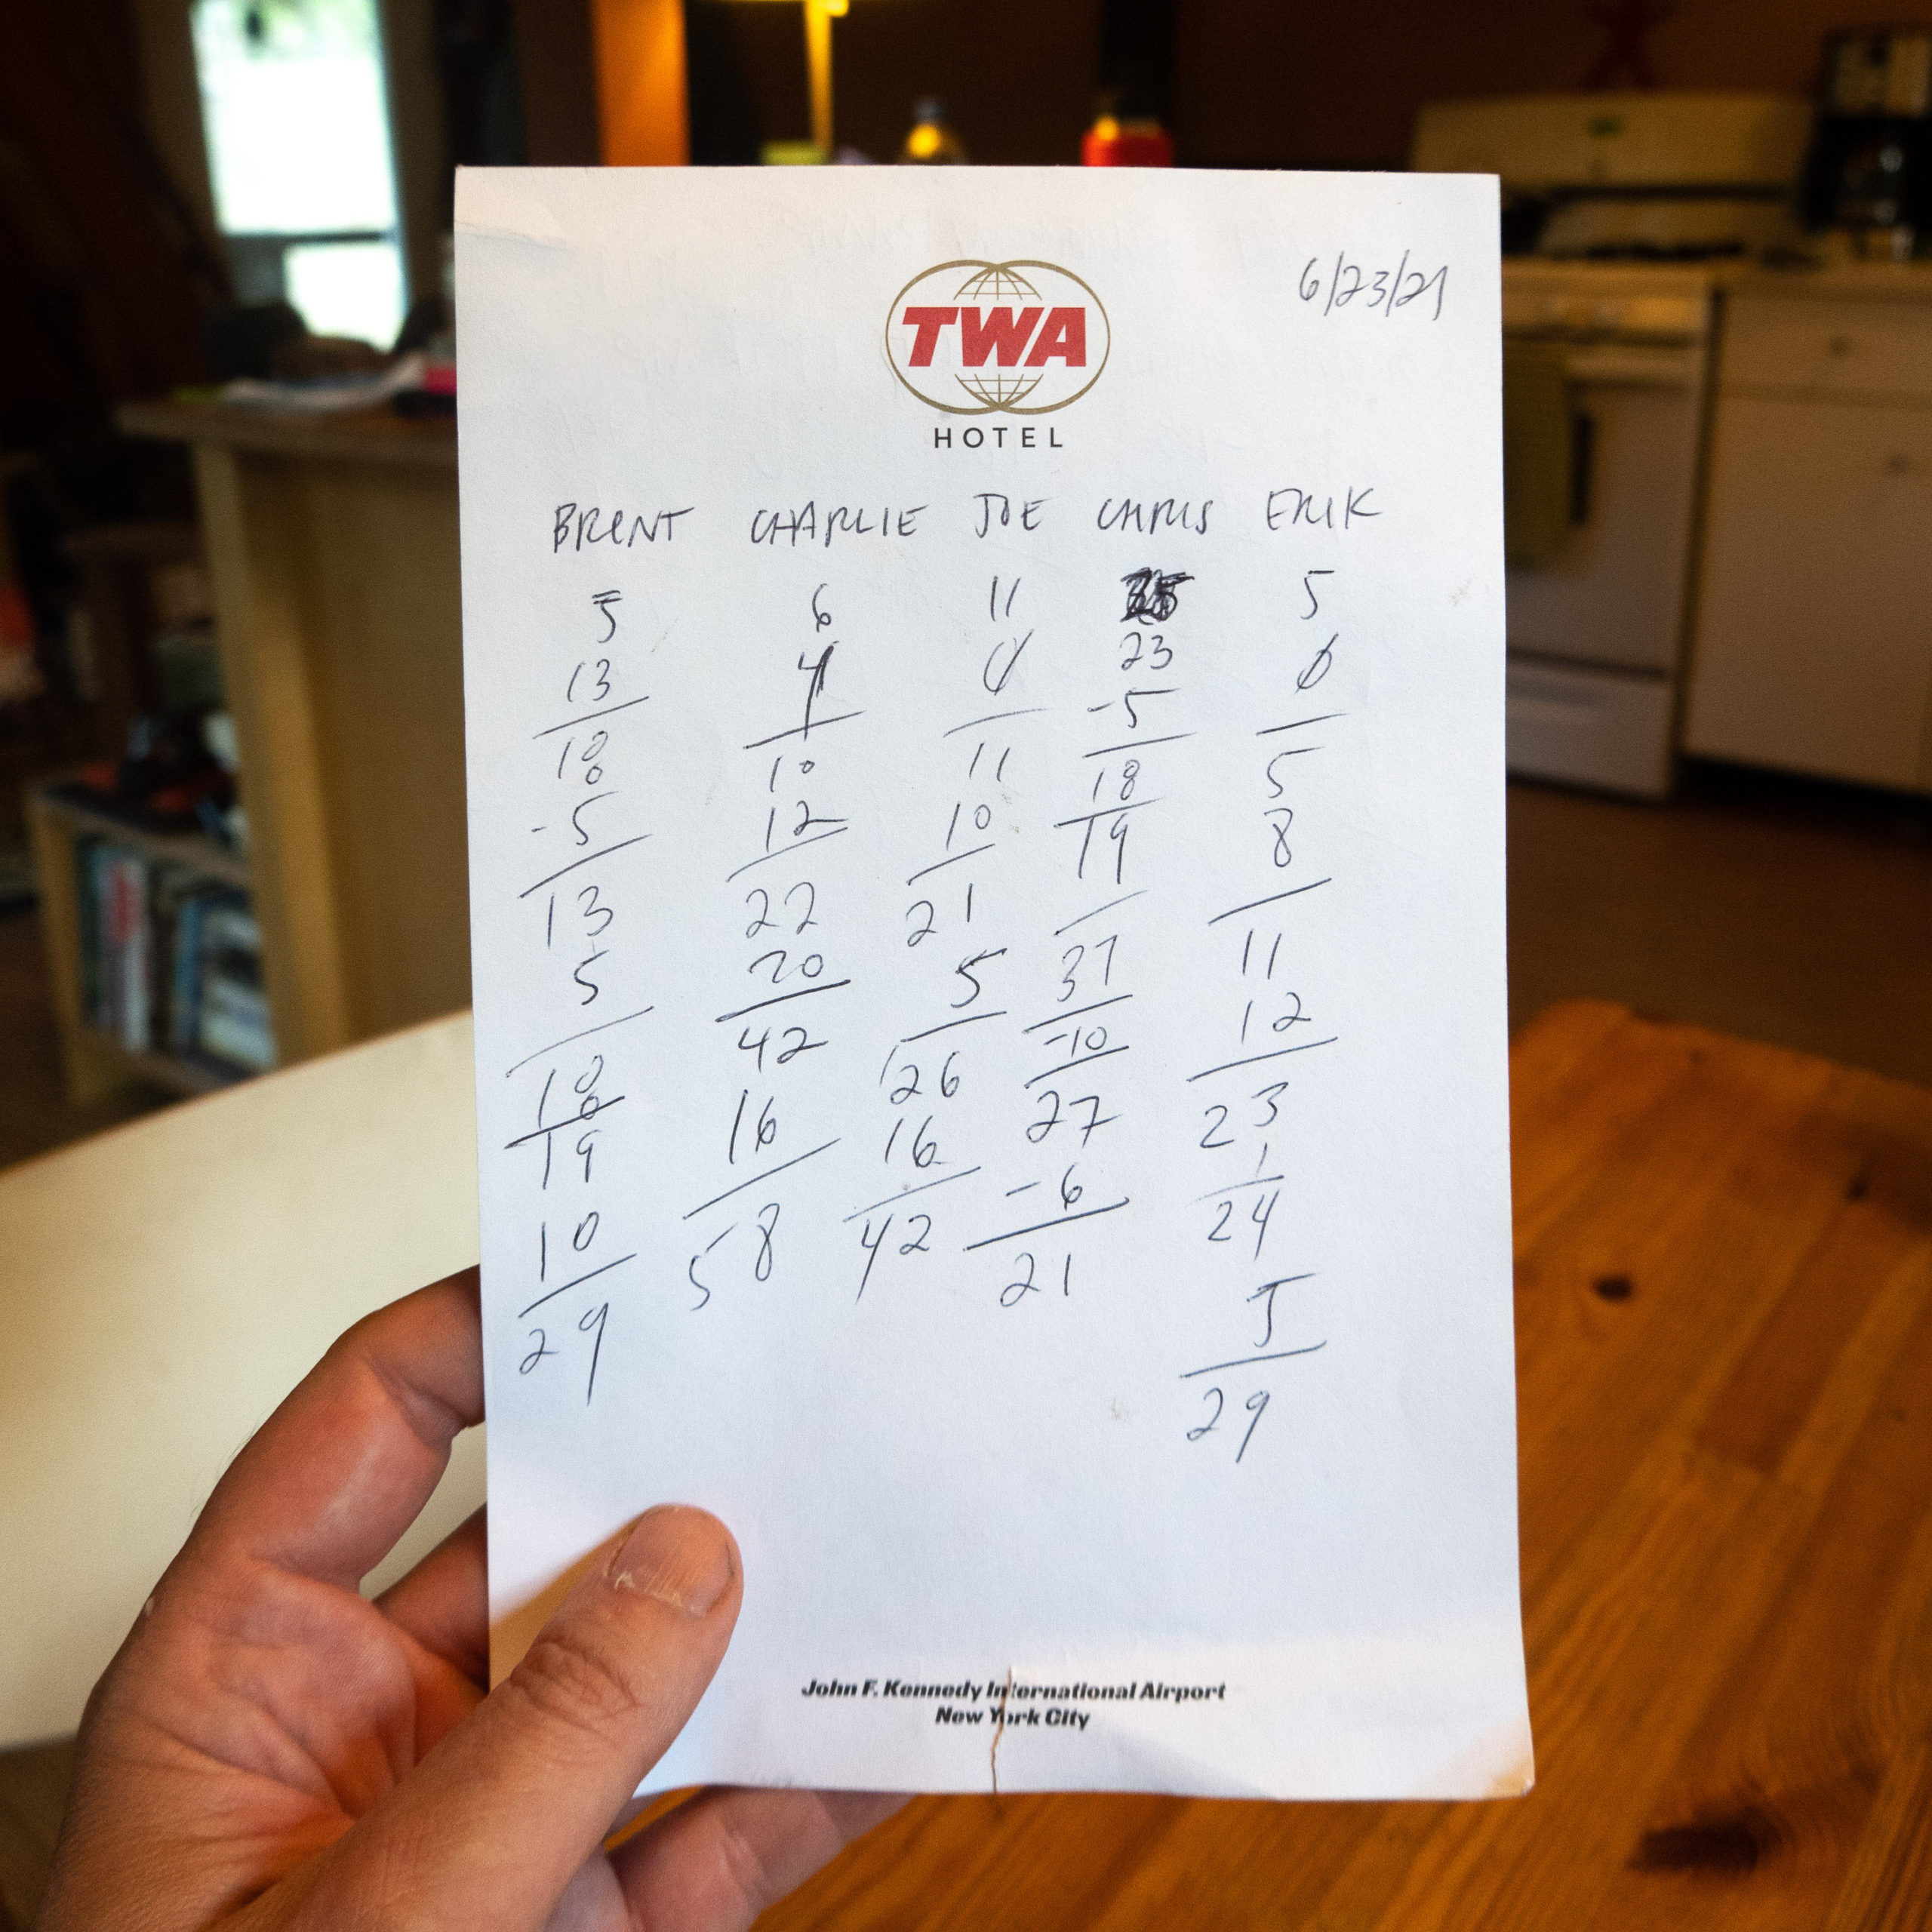 A pad of paper from the TWA Hotel in New York filled with scores for a card game